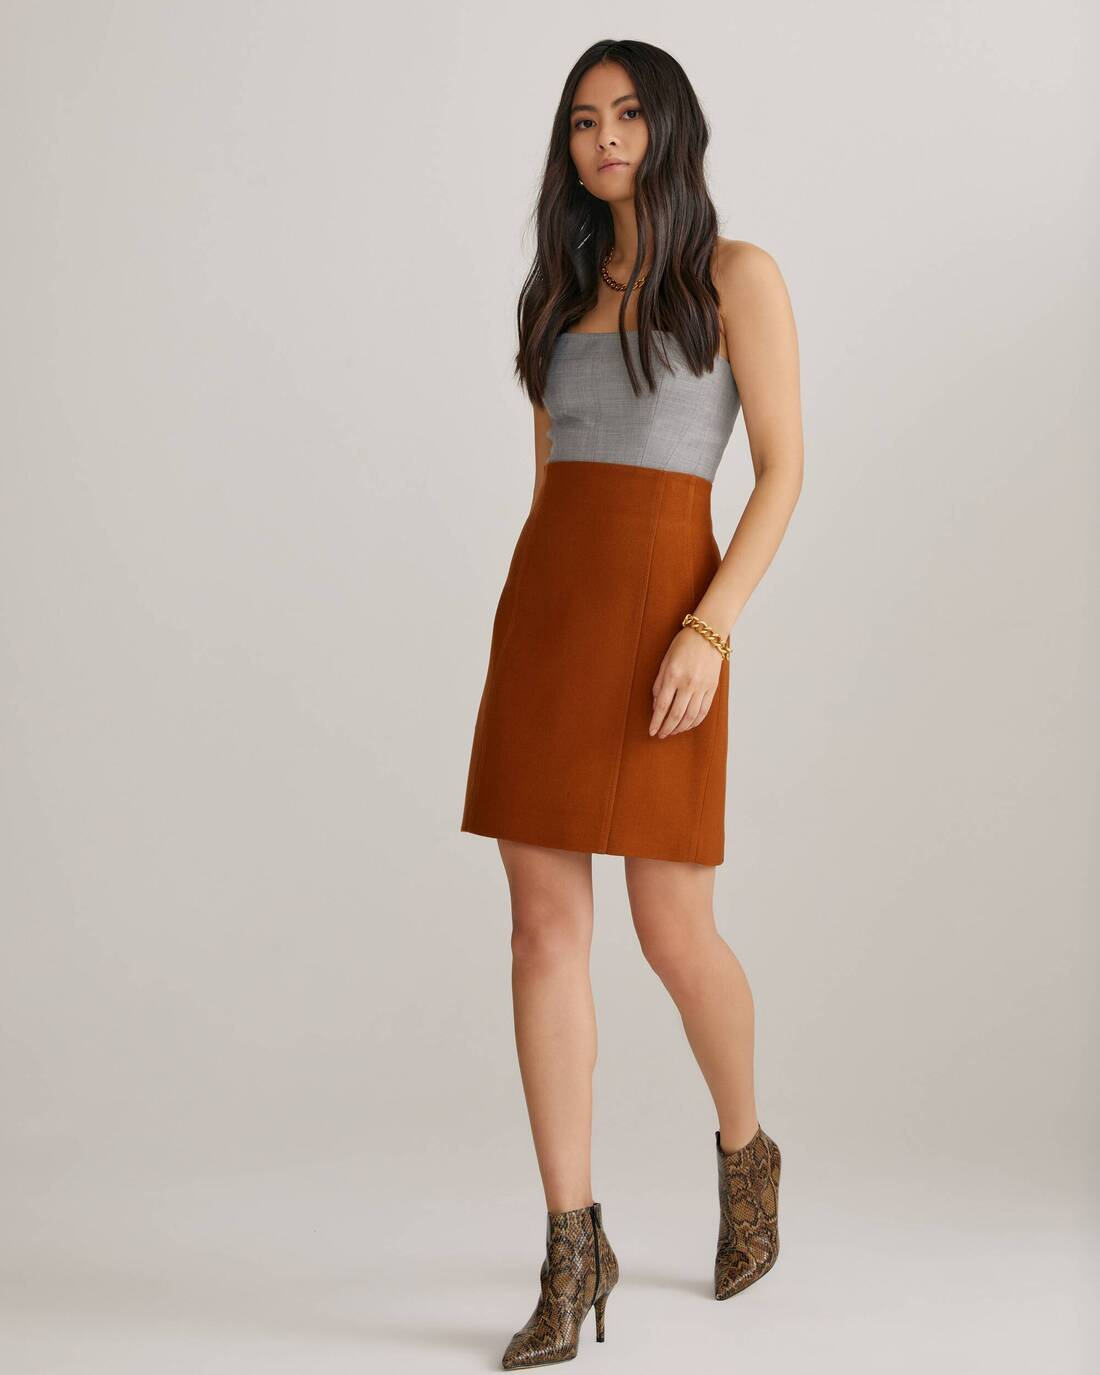 High rise skirt with darts